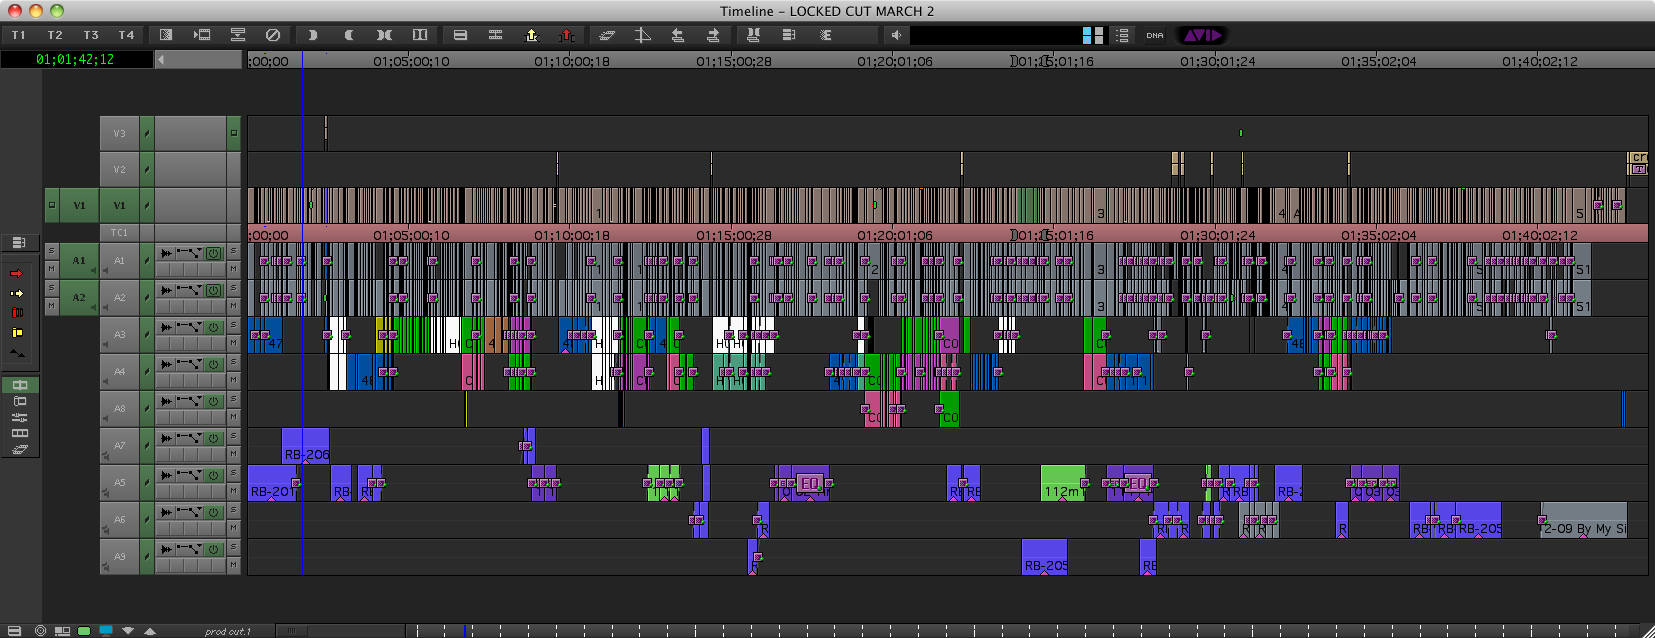 One of the many timelines